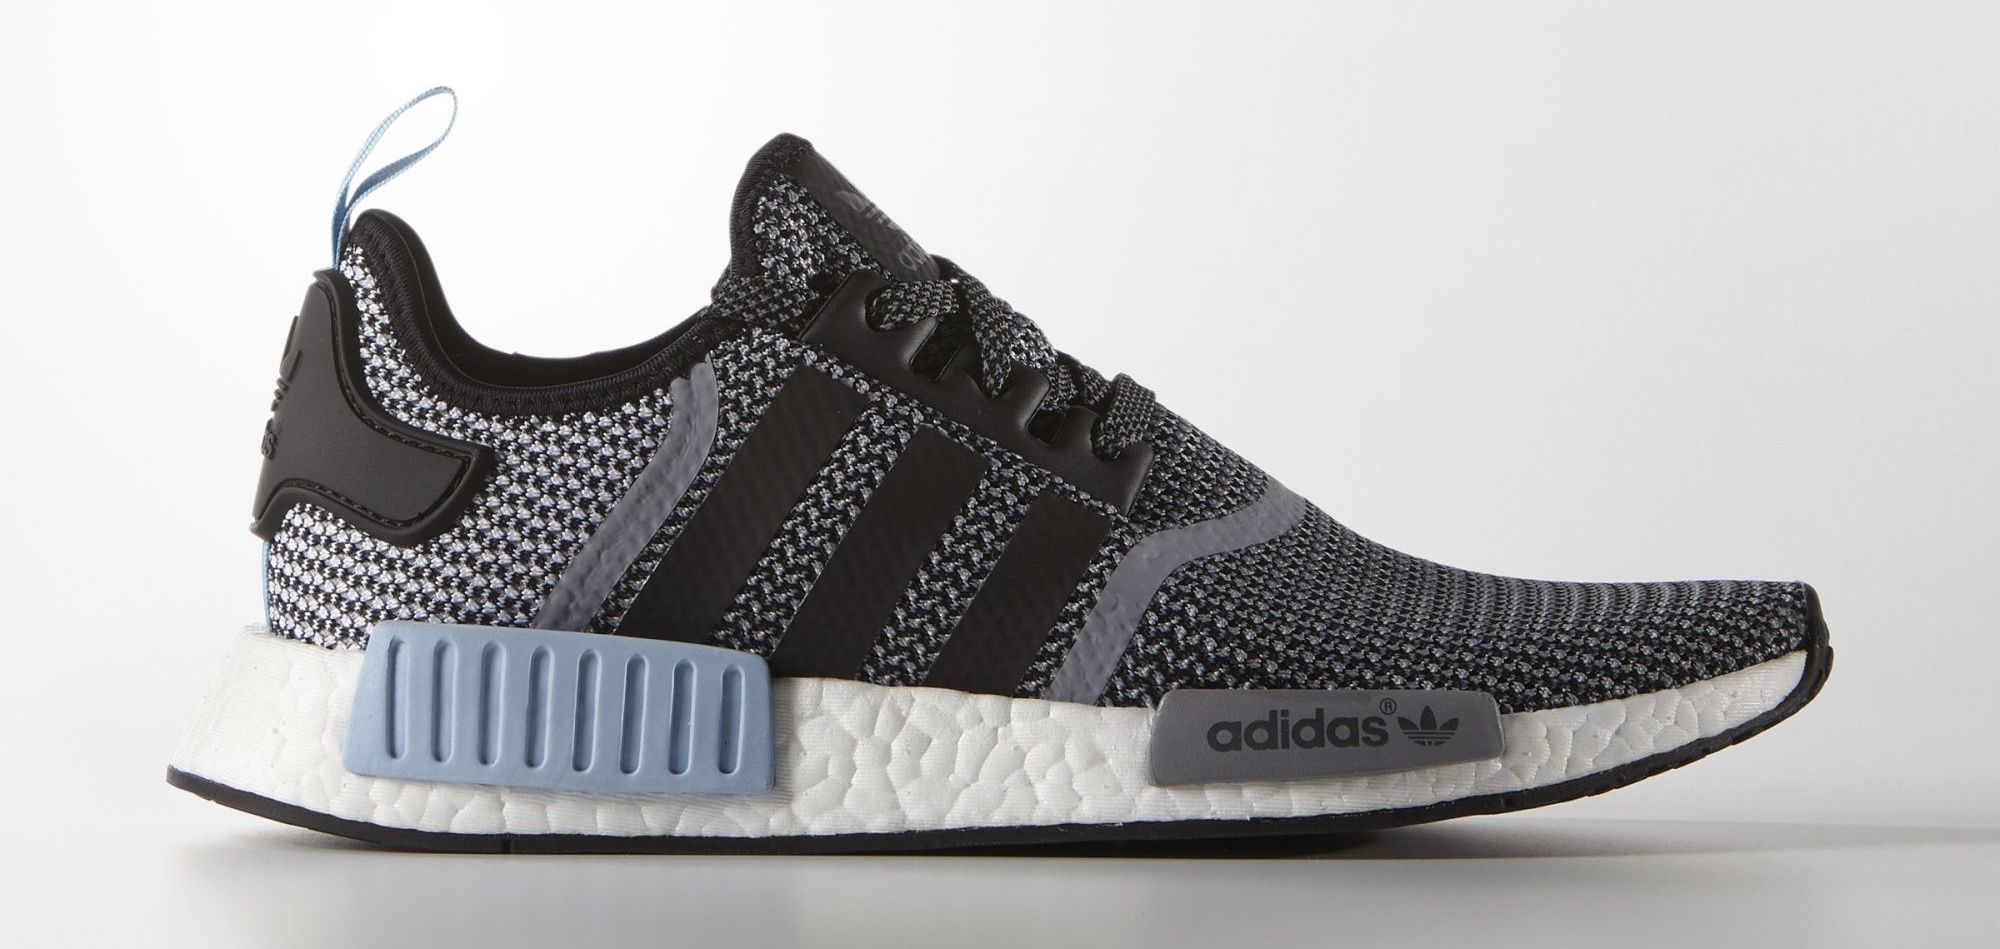 new arrival 6a775 eff19 adidas NMD Runner R1 Ice Blue Grey - WearTesters